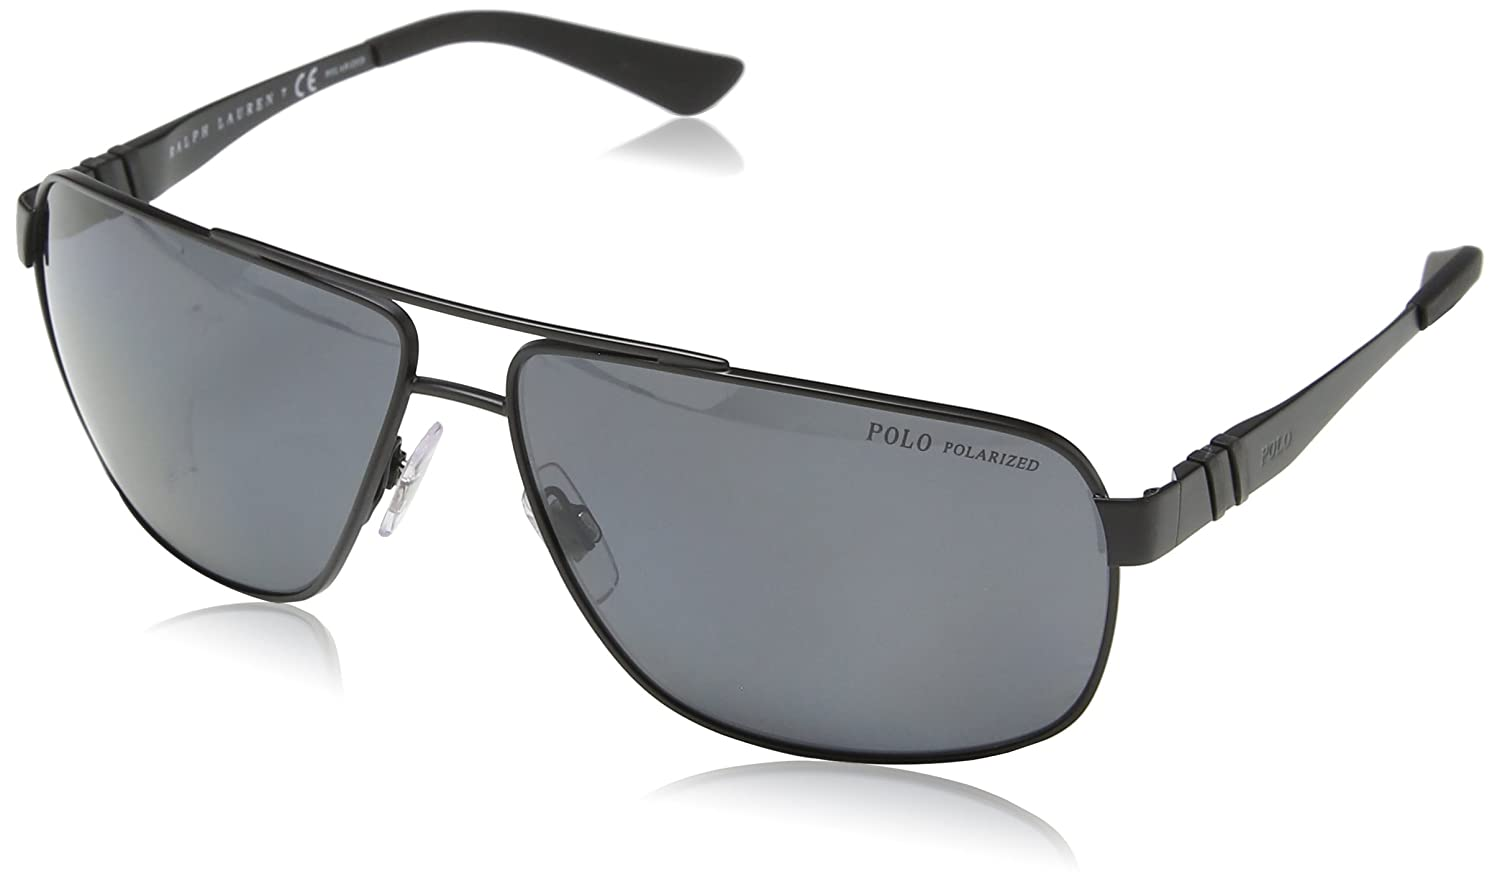 88252fe792 Polo Ralph Lauren Sunglasses Ph3041 Polarized « One More Soul